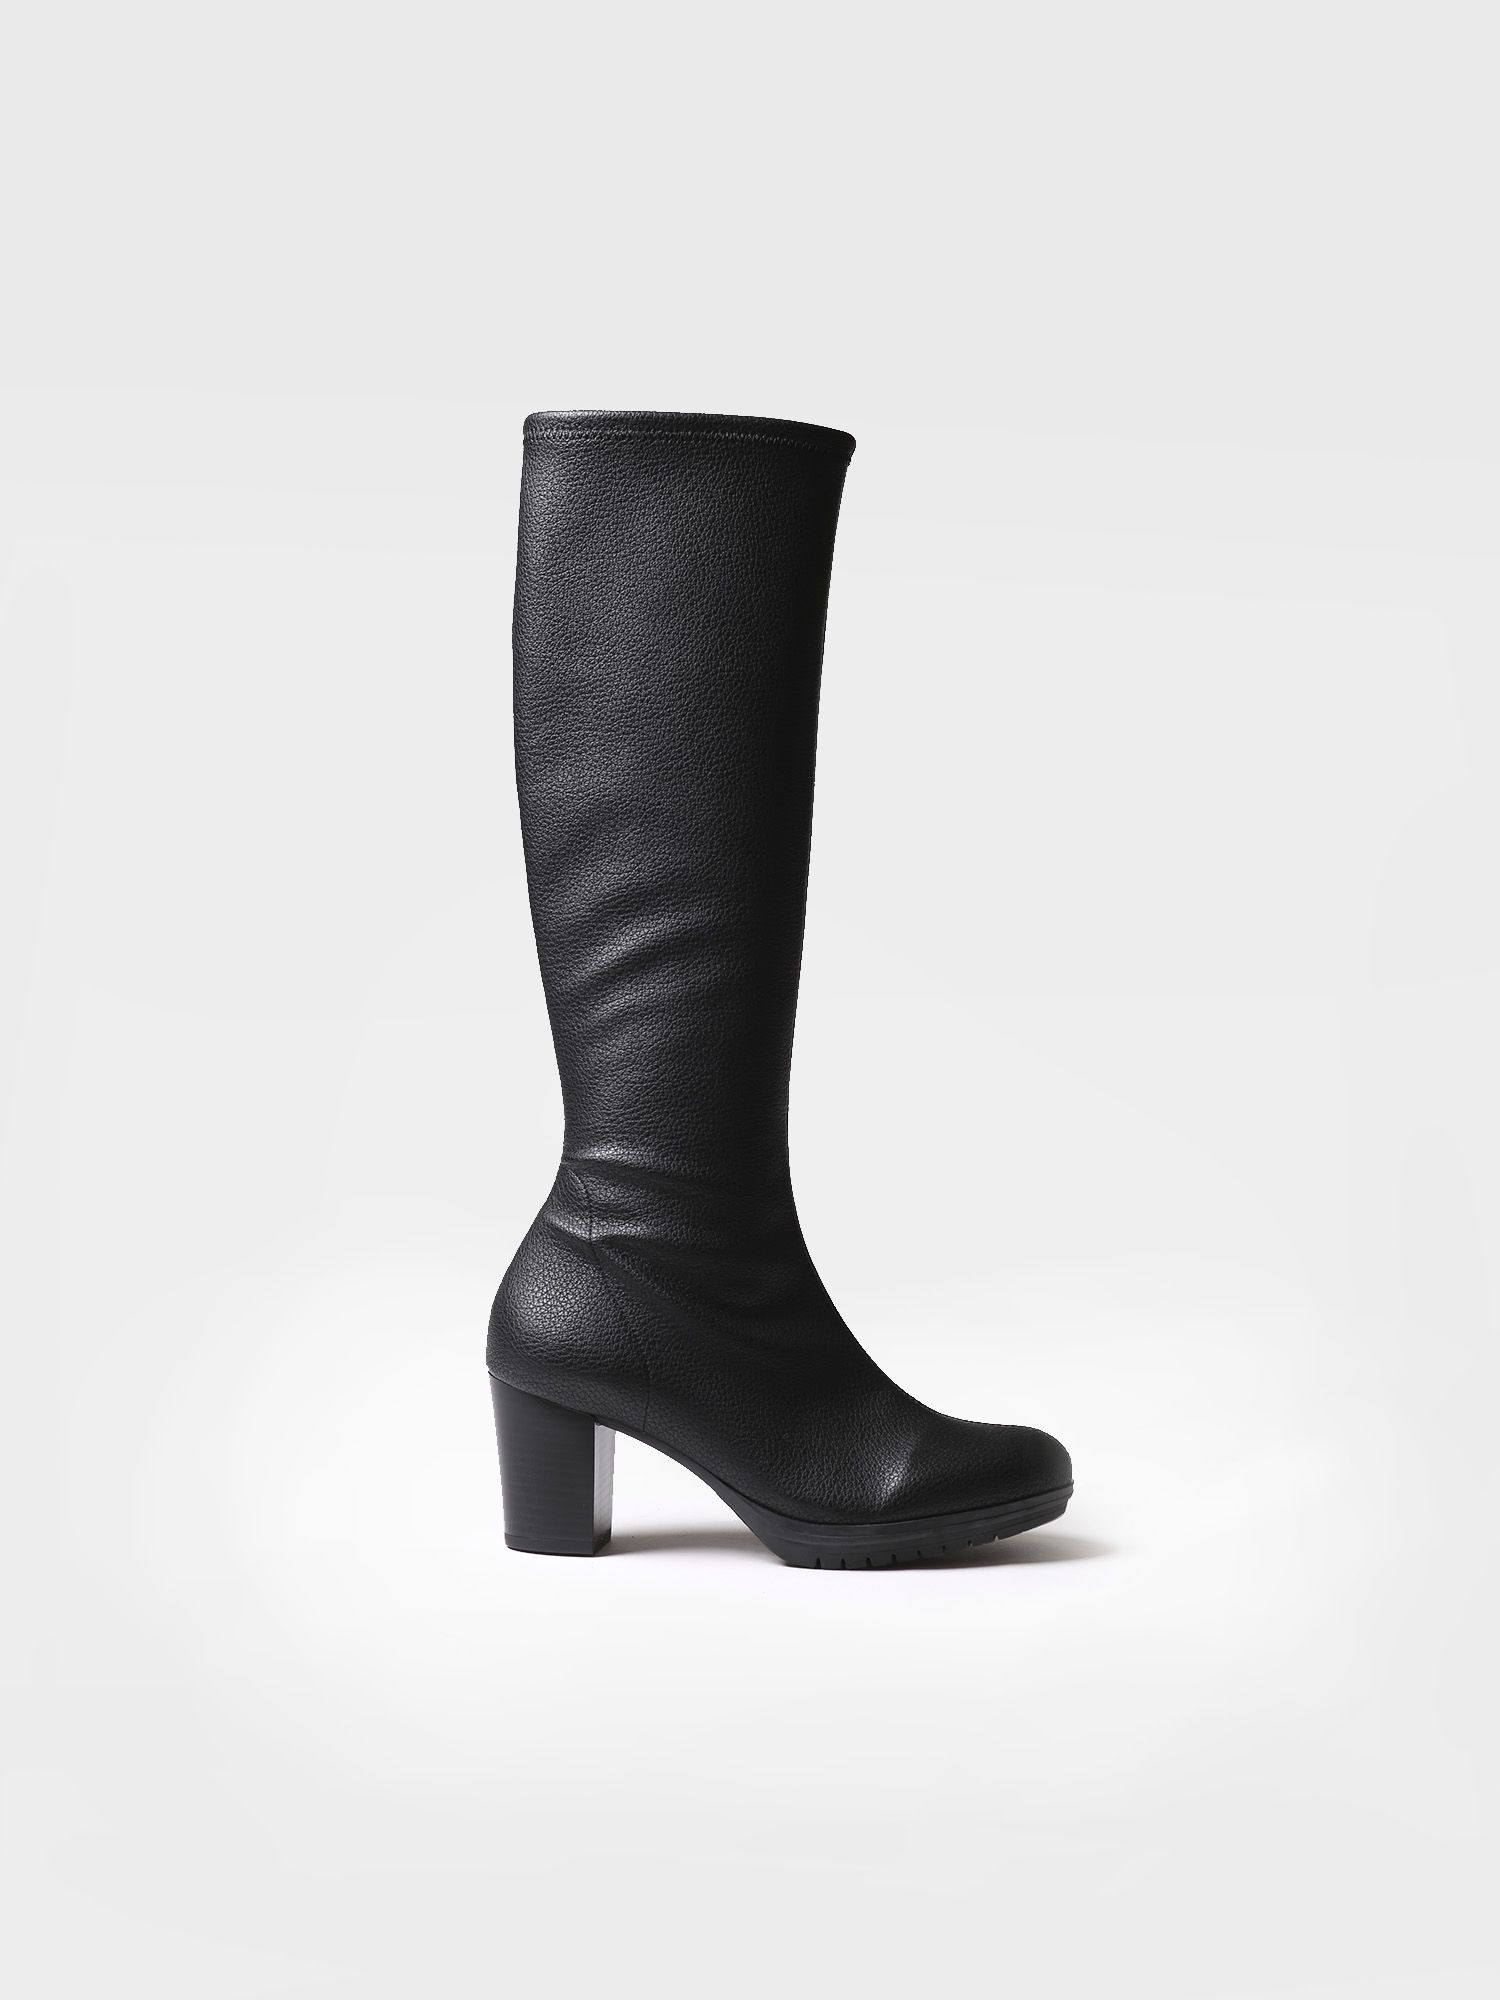 Boot for women made of black leather - FELTON-LP